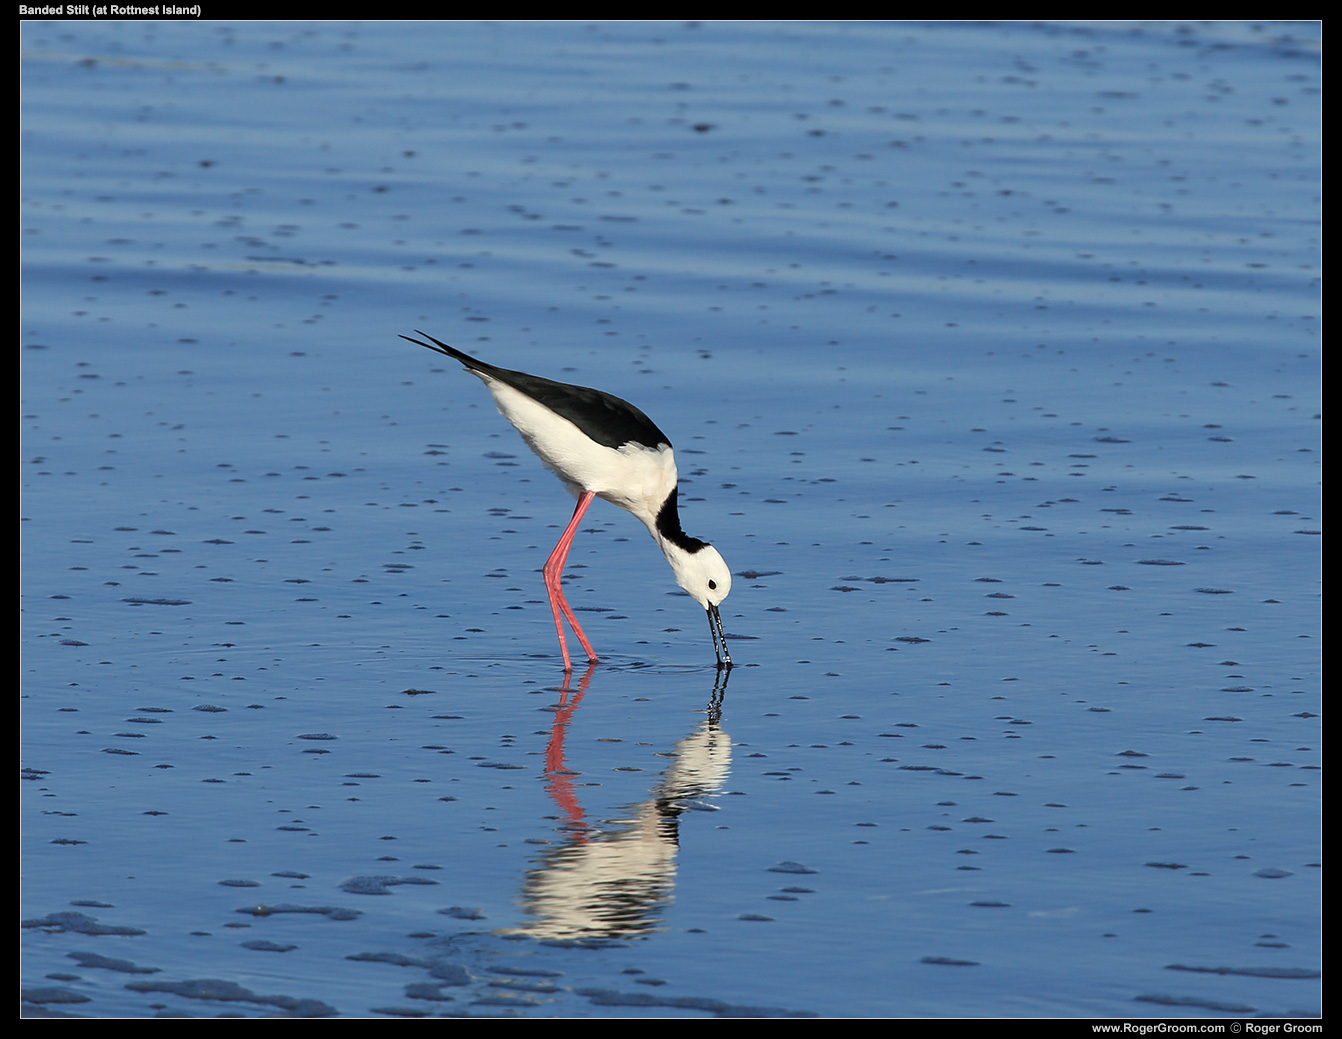 A Banded Stilt on Rottnest Island (here foraging in an inland salt lake).